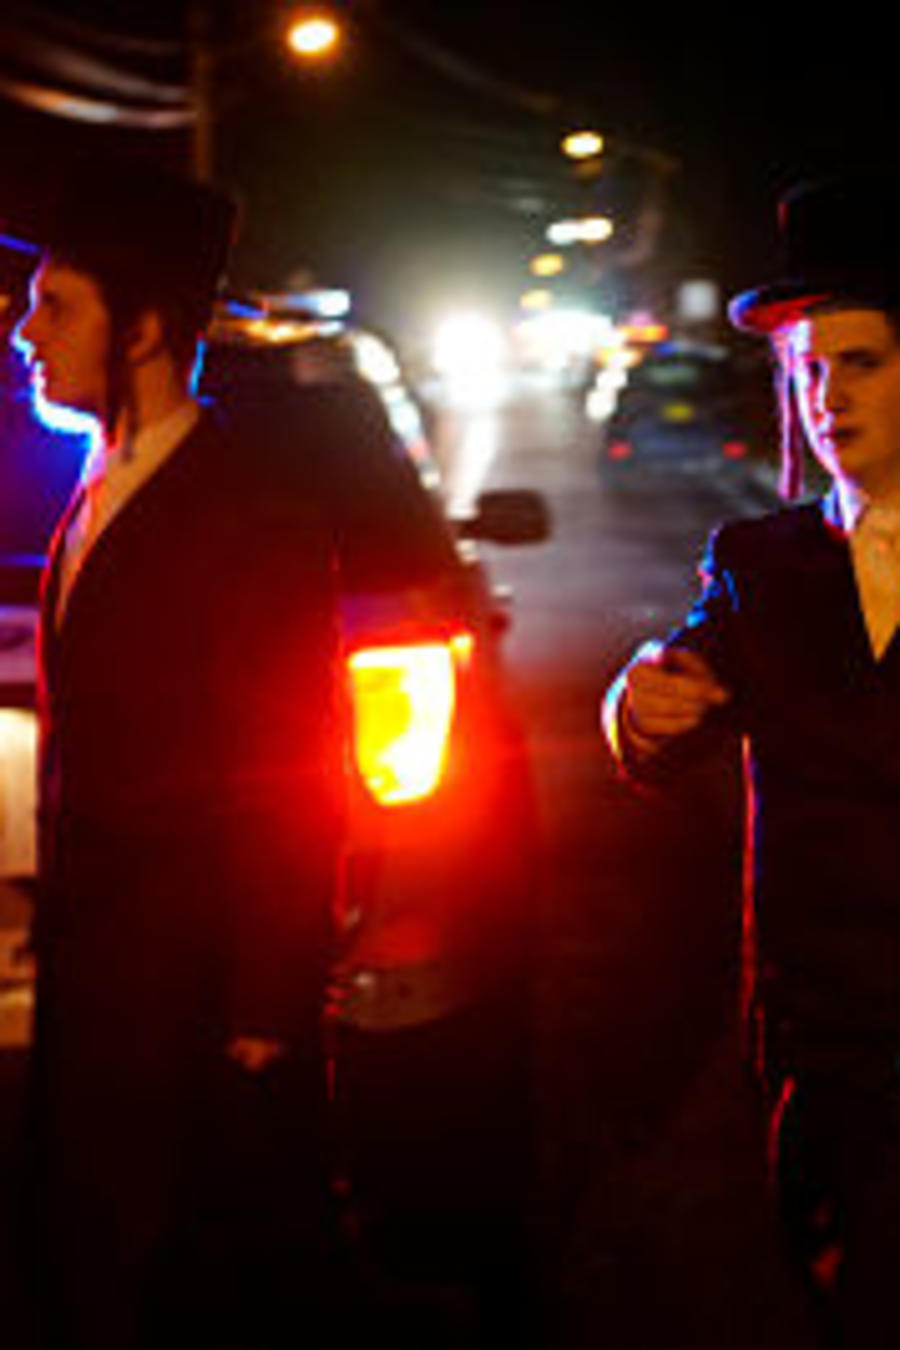 Jewish people try to reach the area where 5 people were stabbed at a Hasidic rabbi's home in Monsey, New York